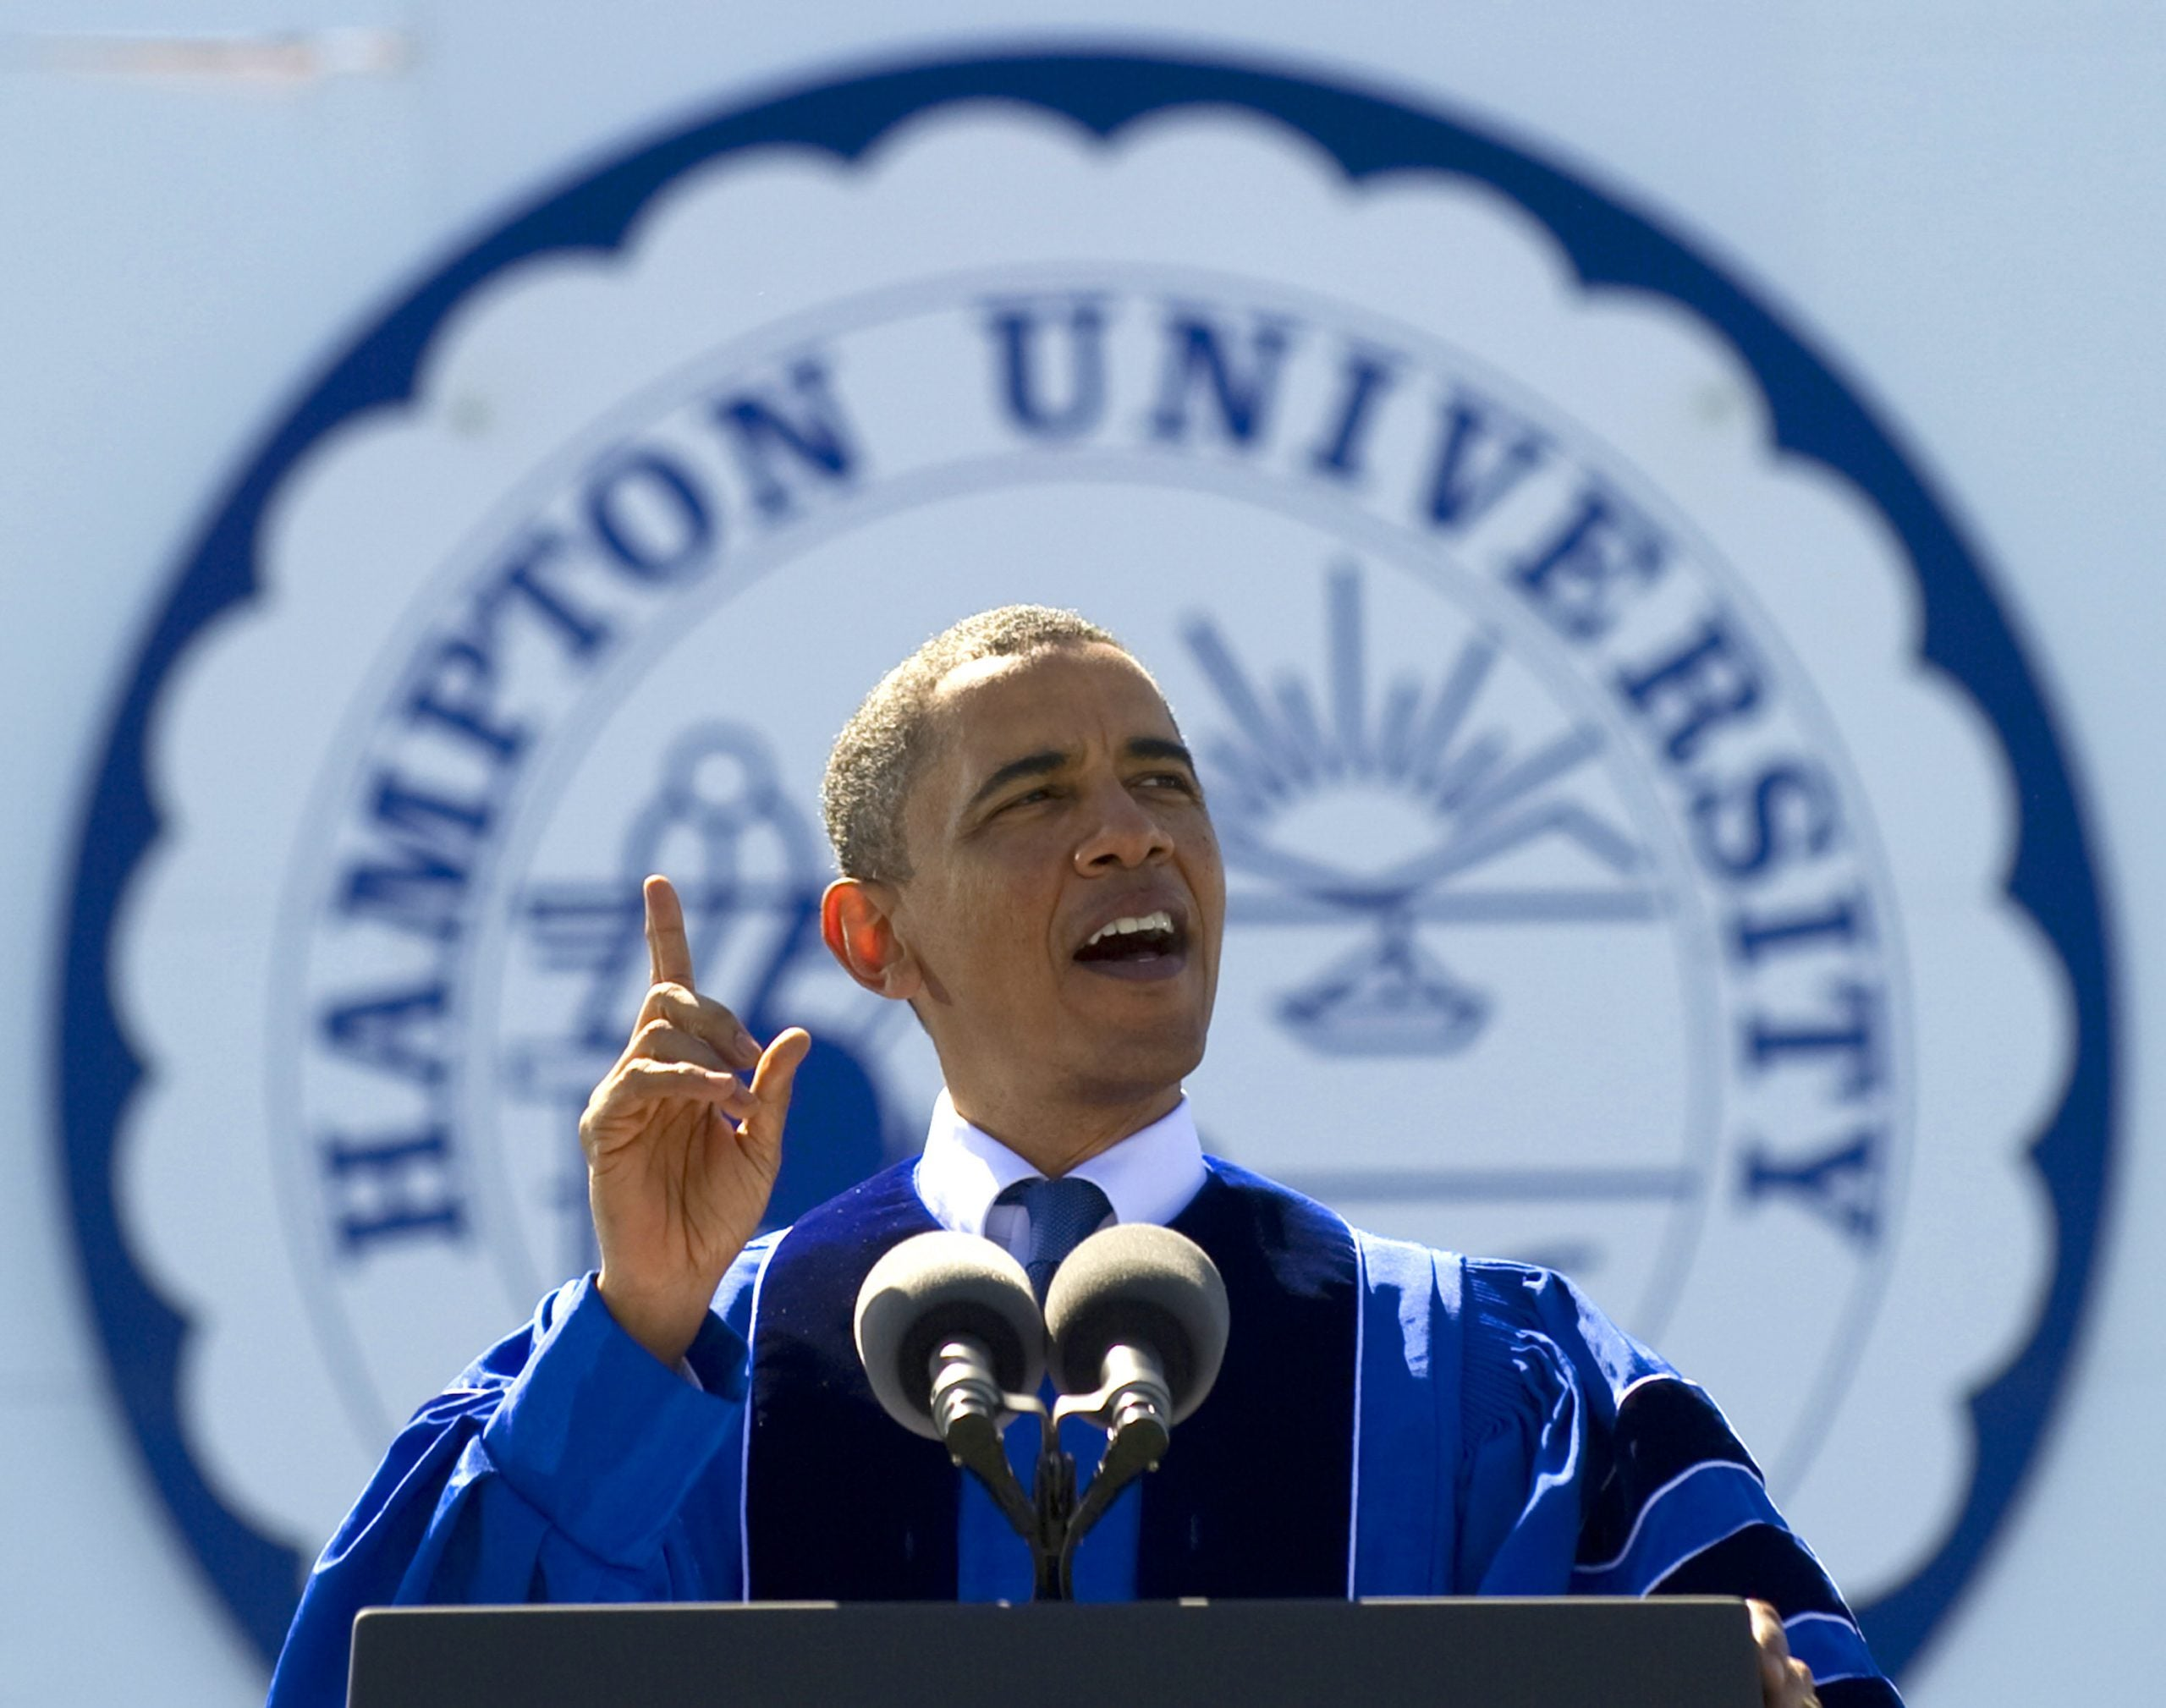 Barack Obama delivers the commencement speech at Hampton University, a historically Black university in Virginia that recently received a large financial gift from MacKenzie Scott